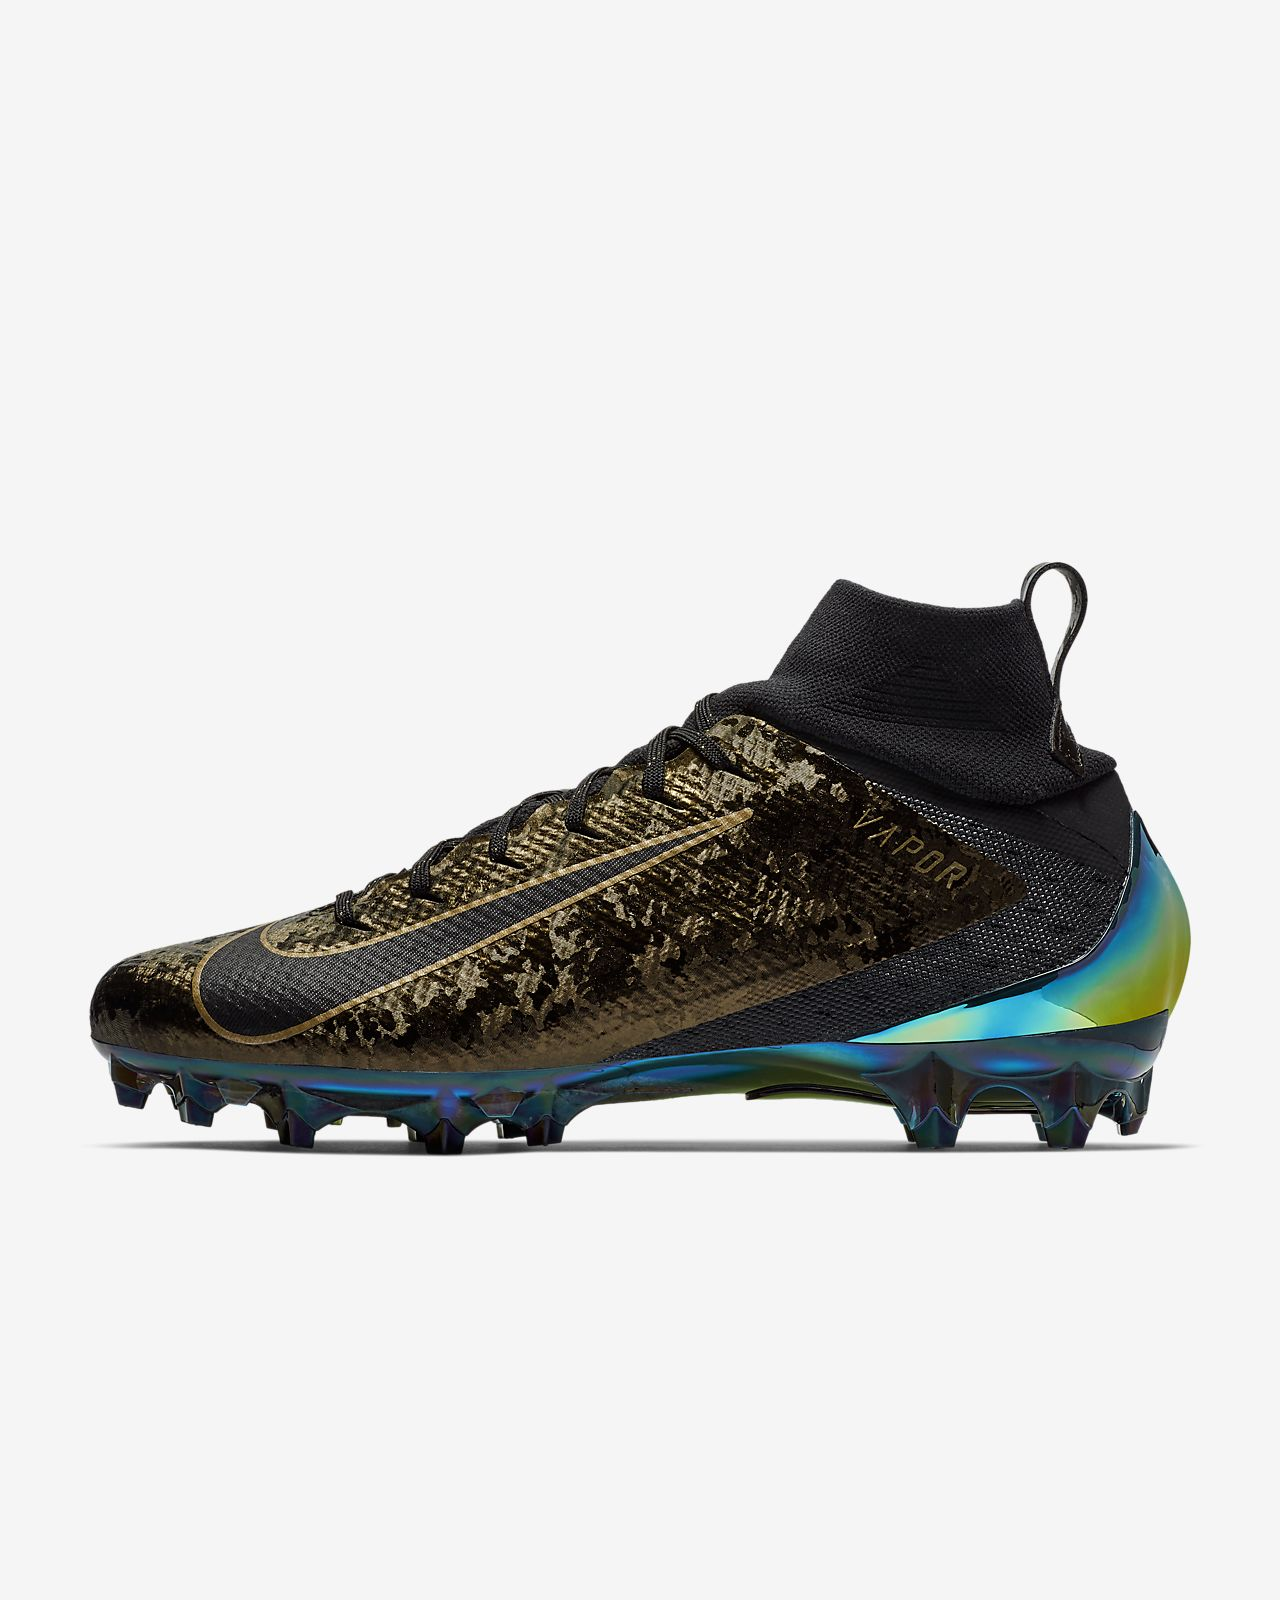 Vapor Untouchable Pro 3 PRM Football Cleat